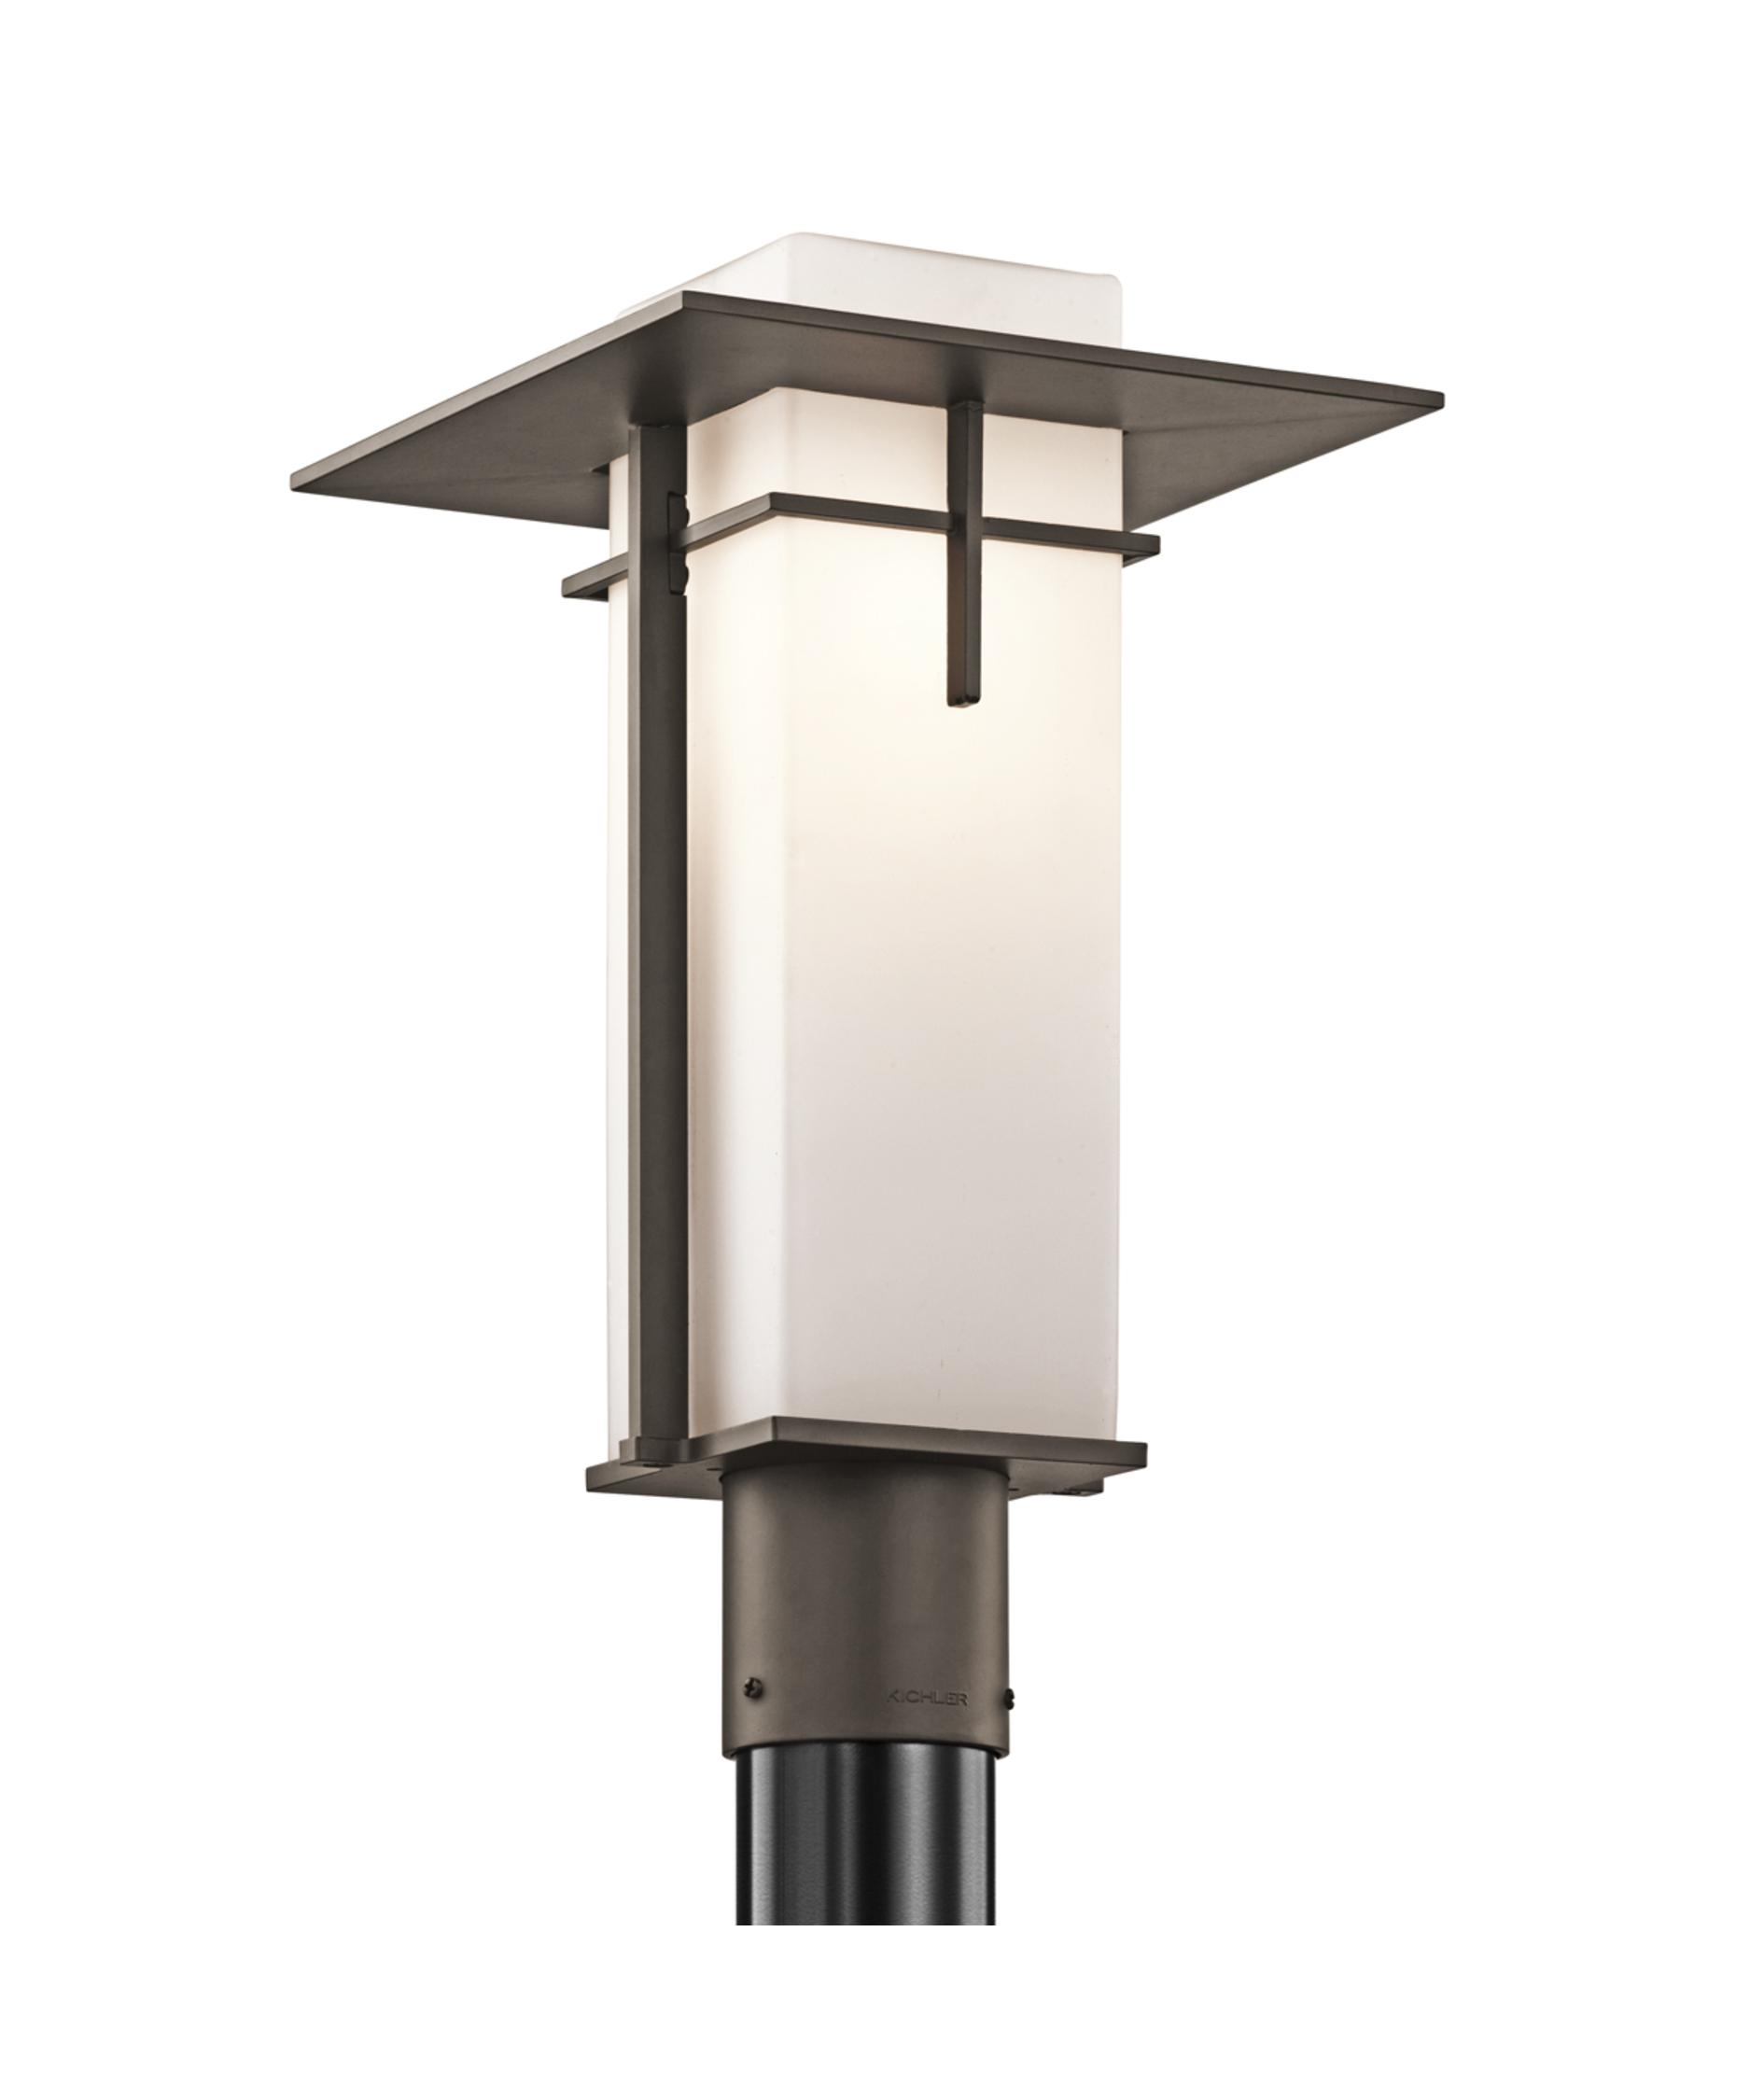 Kichler 49646 Caterham 10 Inch Wide 1 Light Outdoor Post Lamp ...